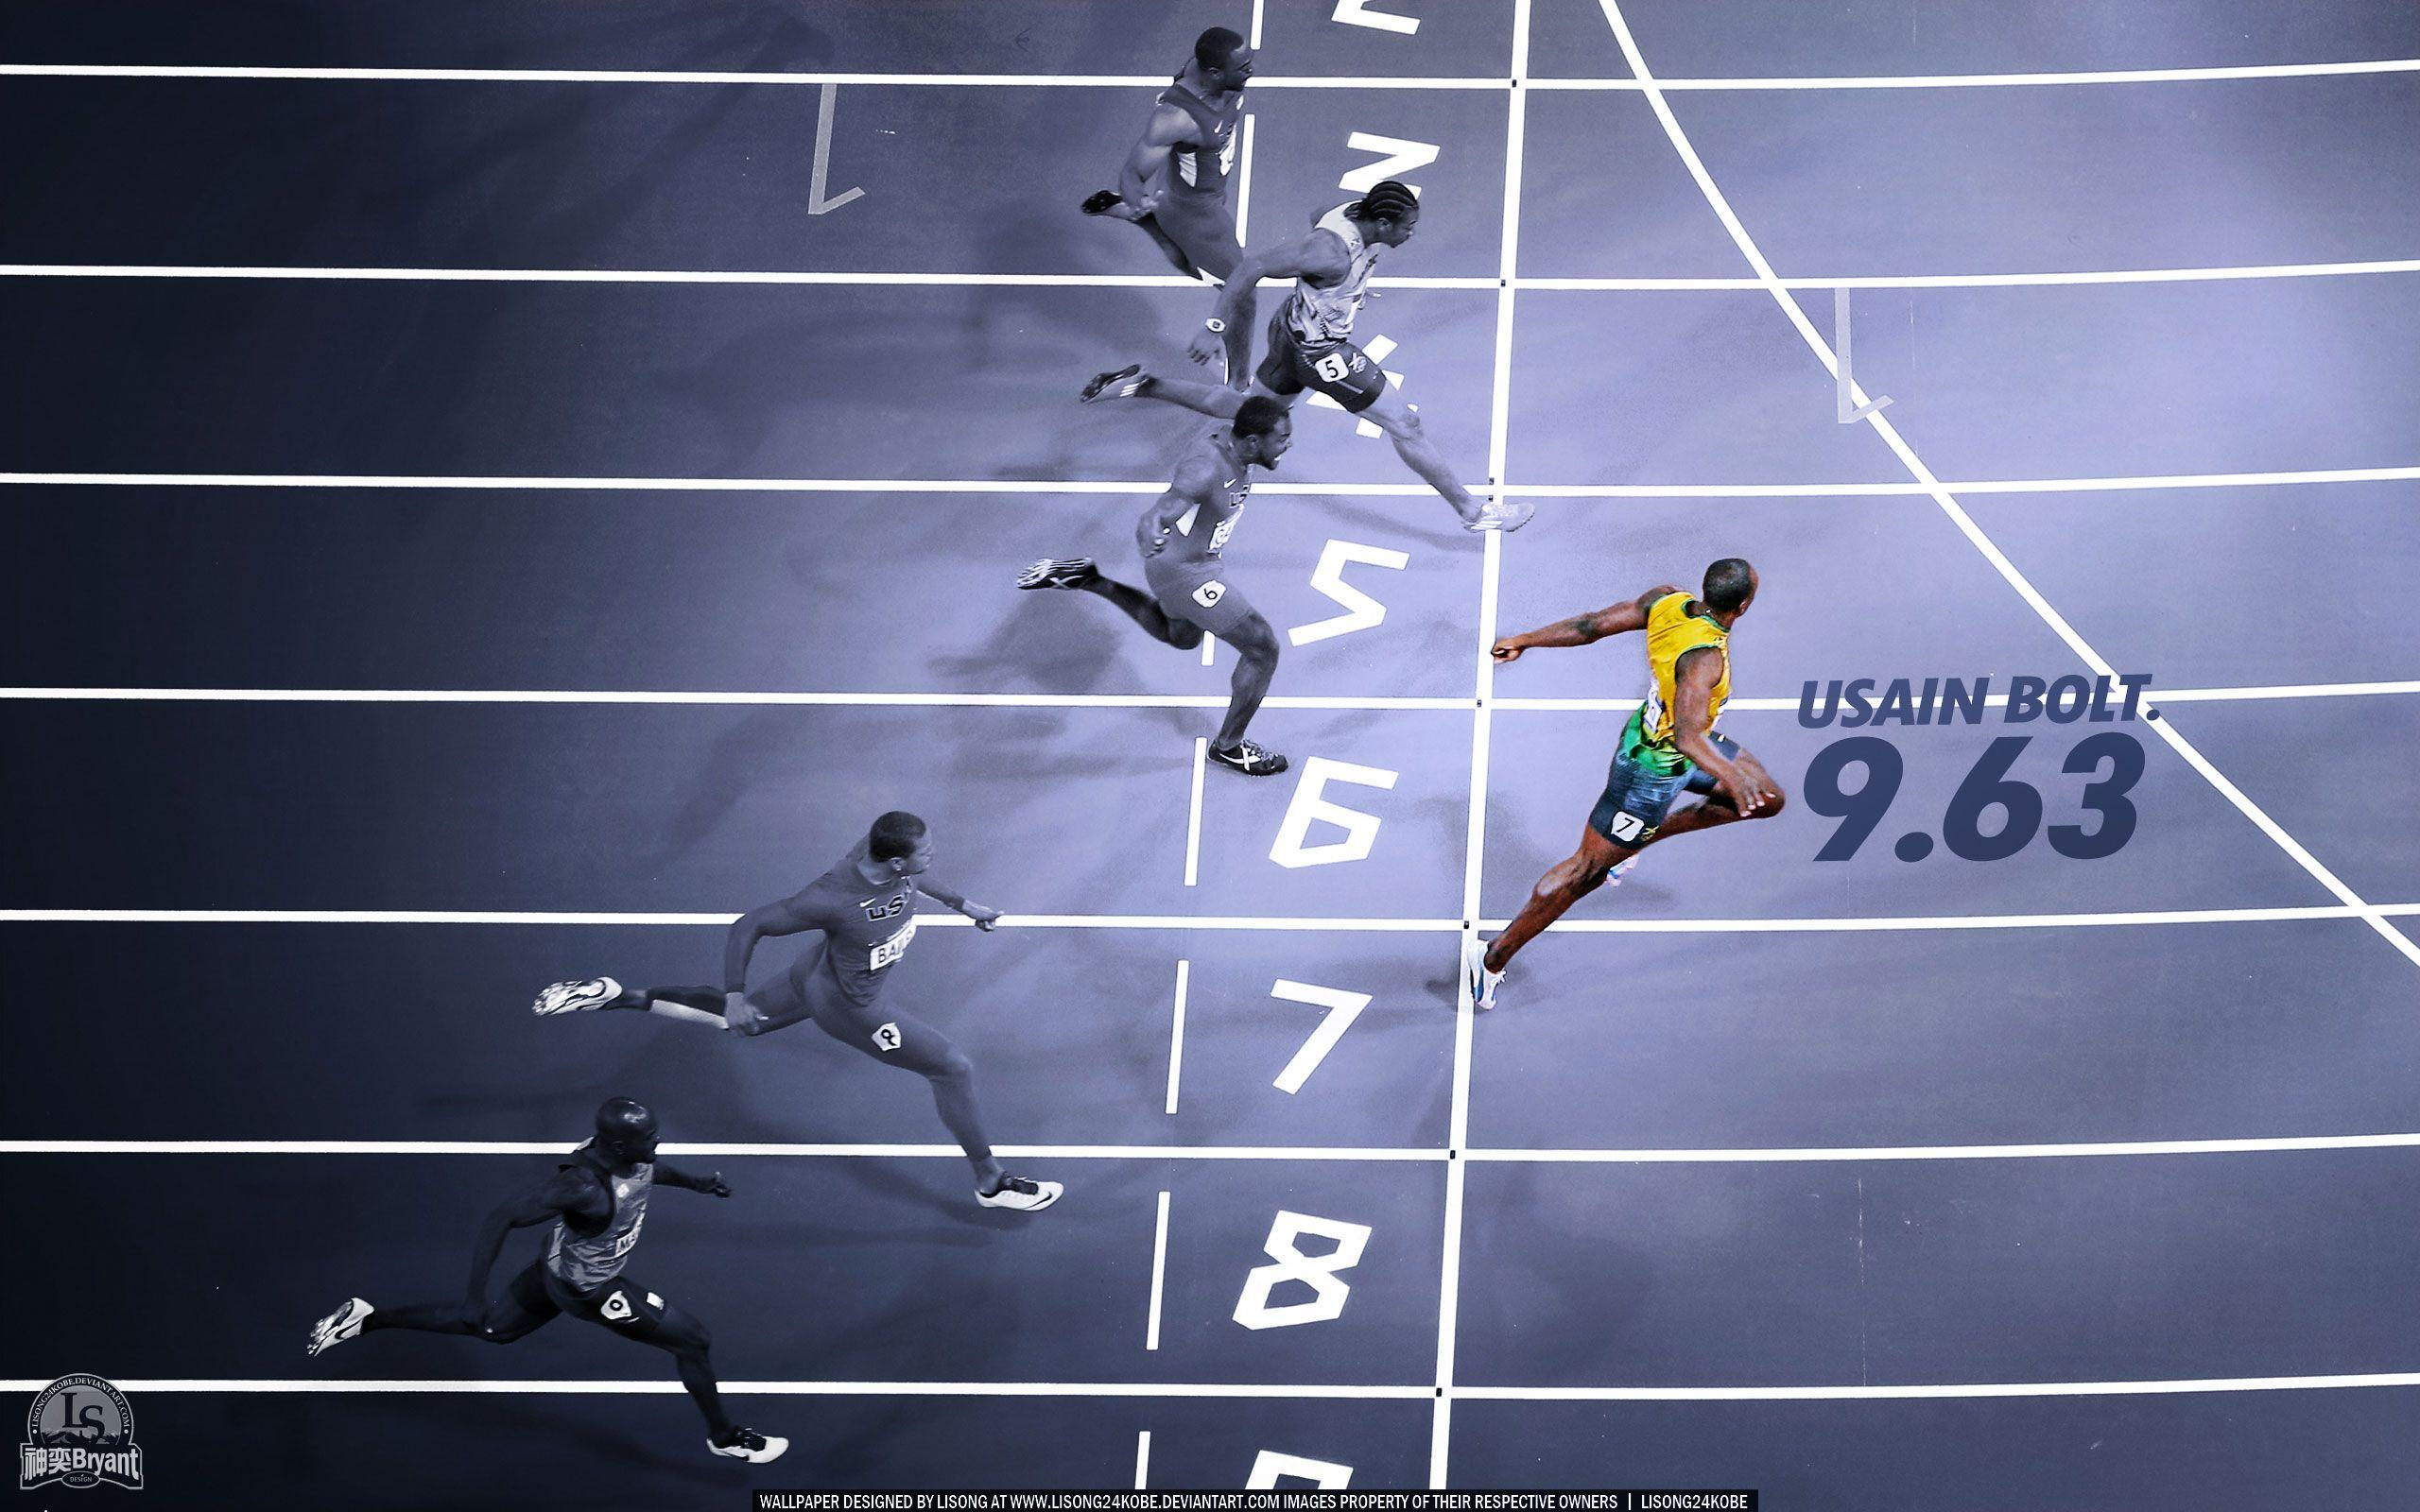 Usain Bolt Wallpapers 2015 Olympics